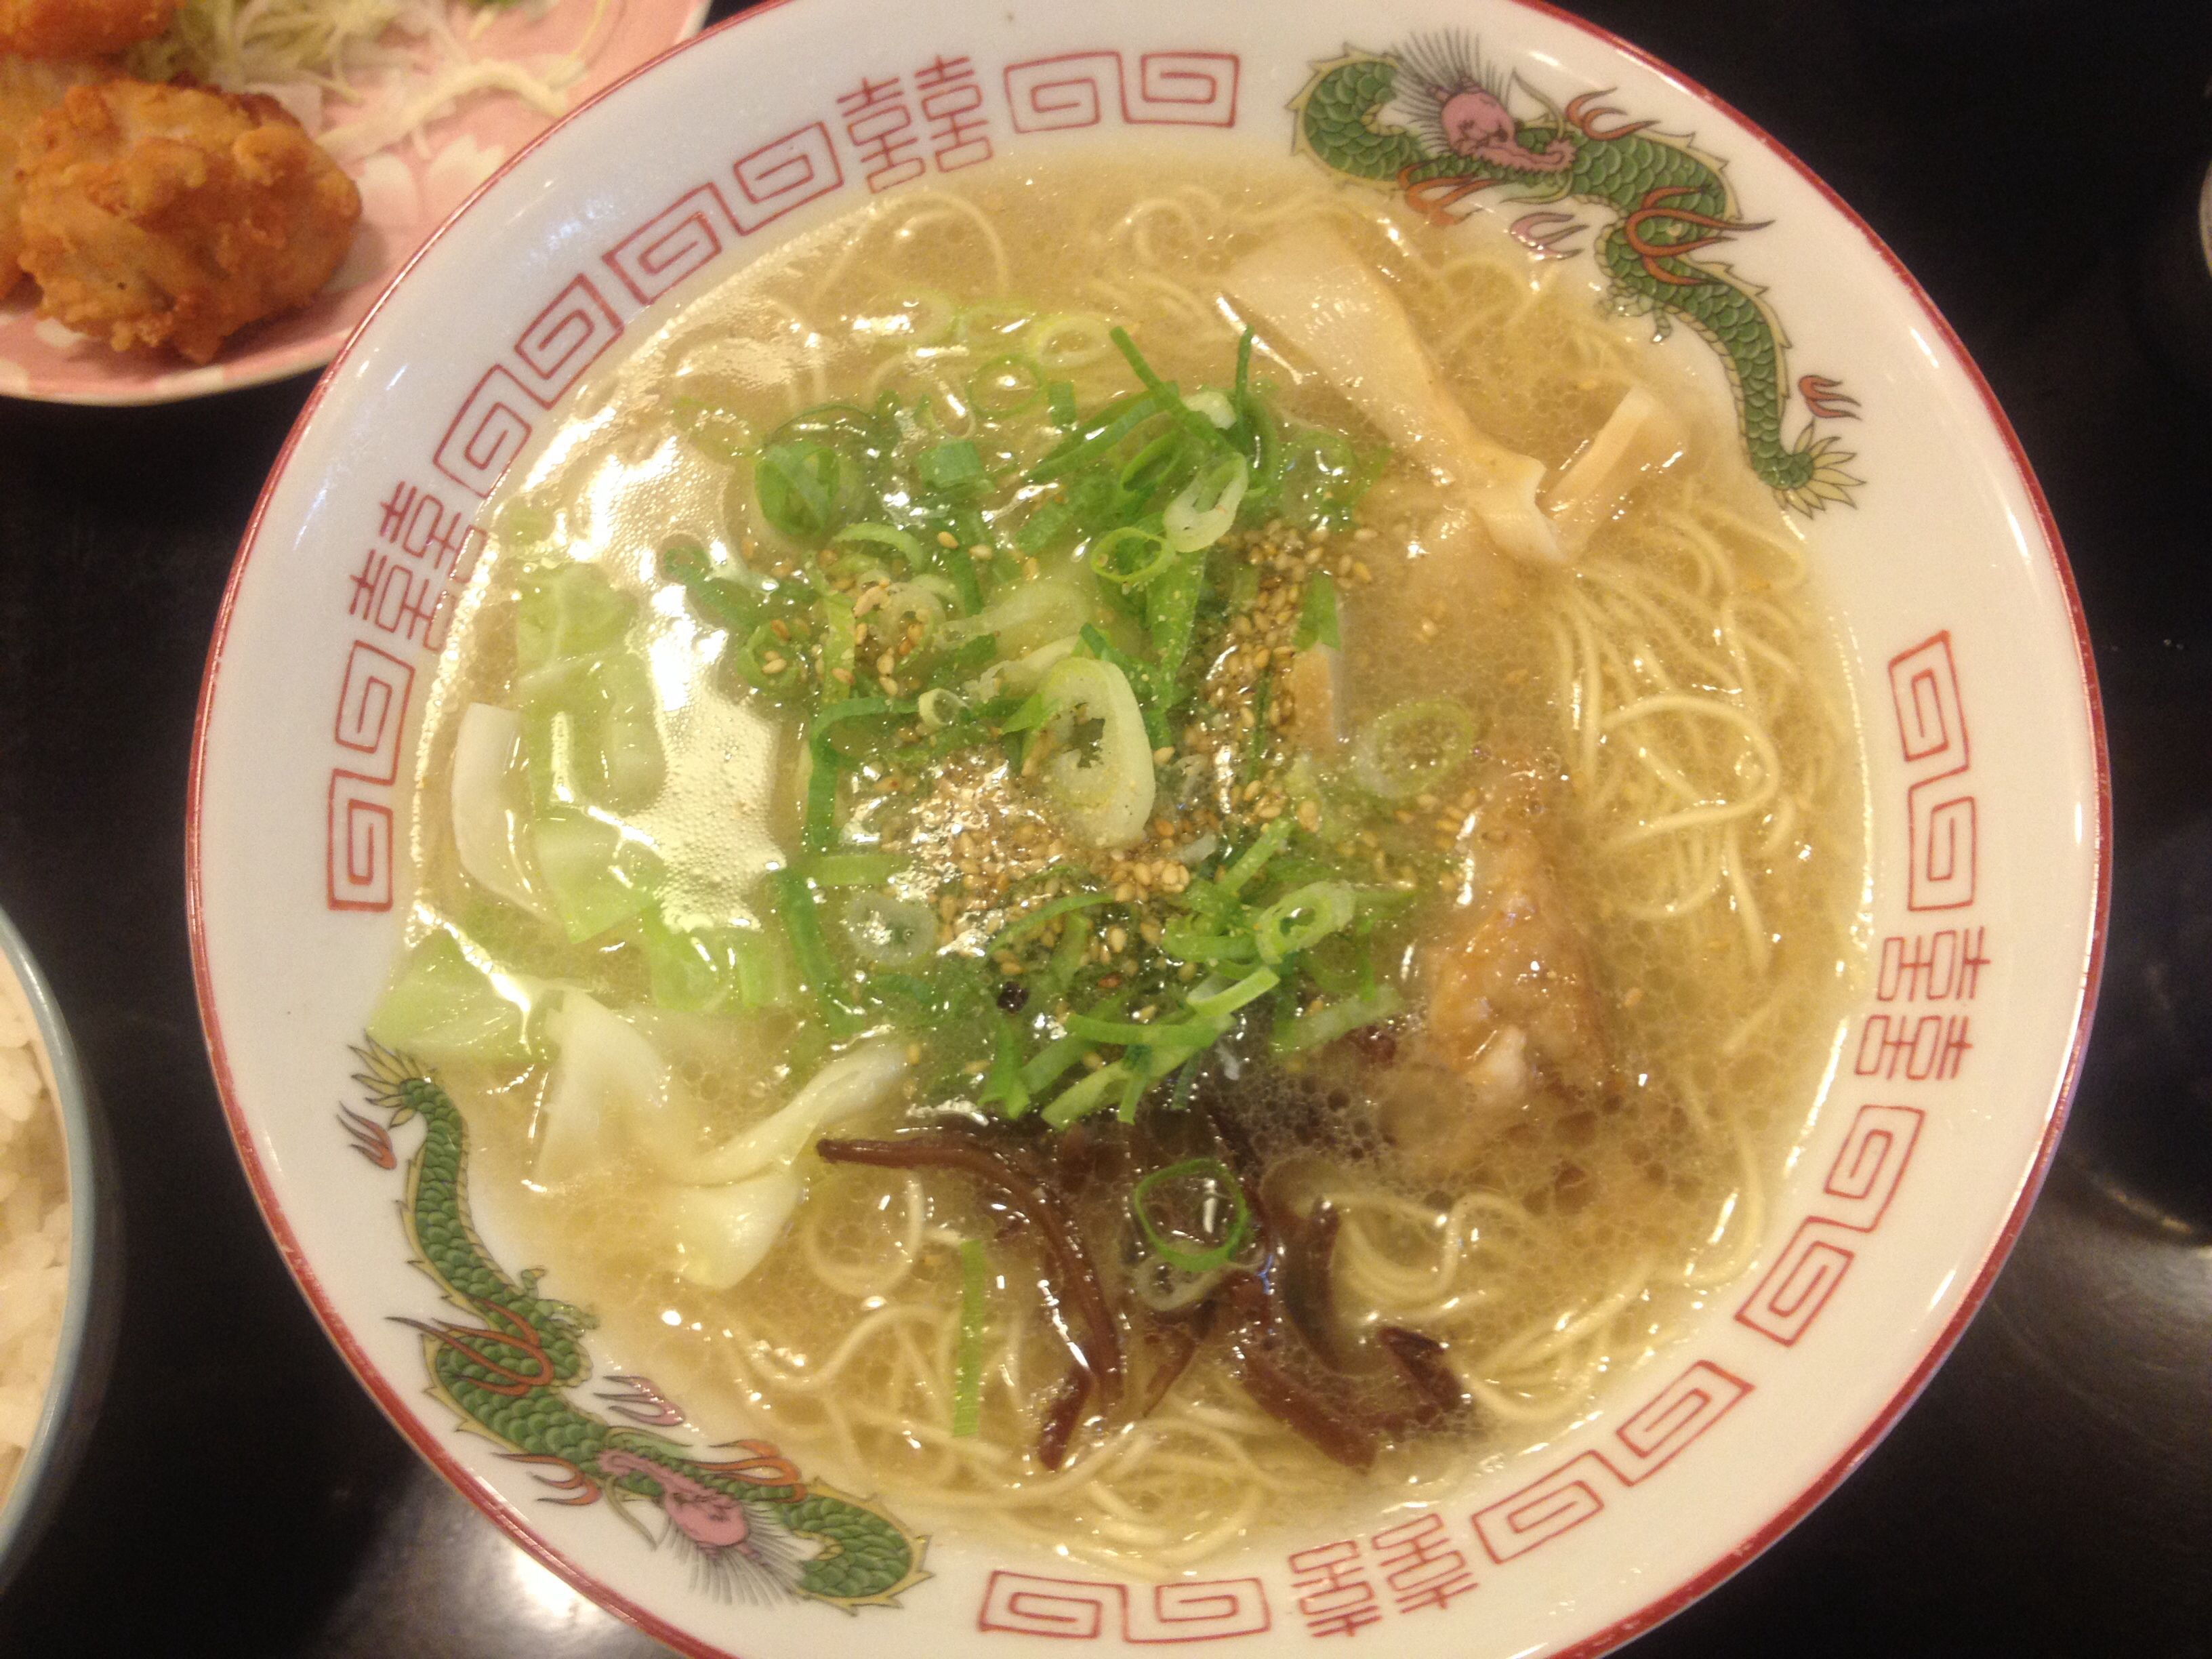 #ramen #noodle #lunch in #Hakata, #Fukuoka, #Japan   Taken by iPhone with store's lights at lunch